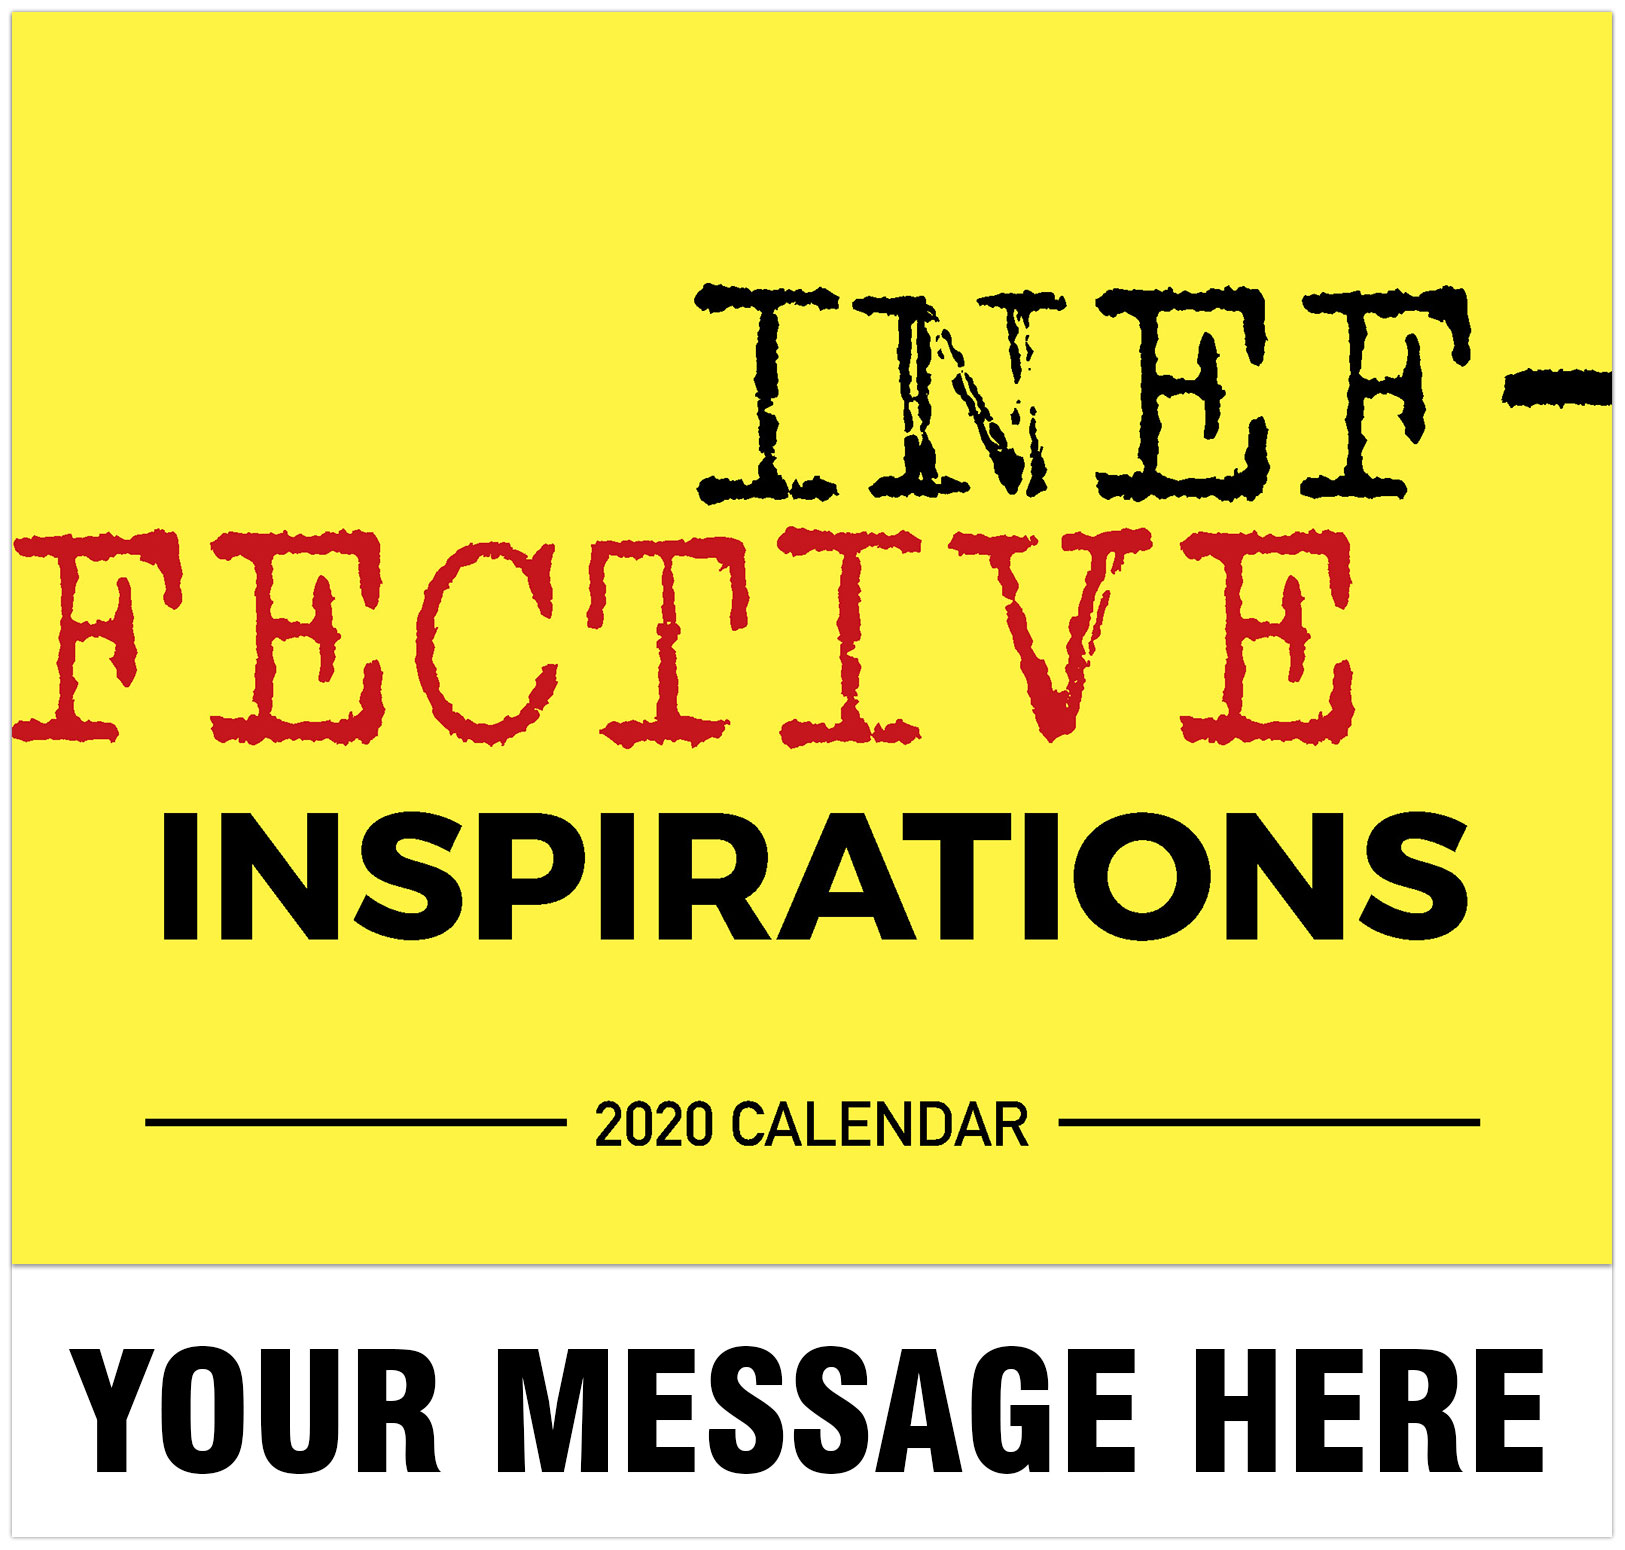 Ineffective Inspirations